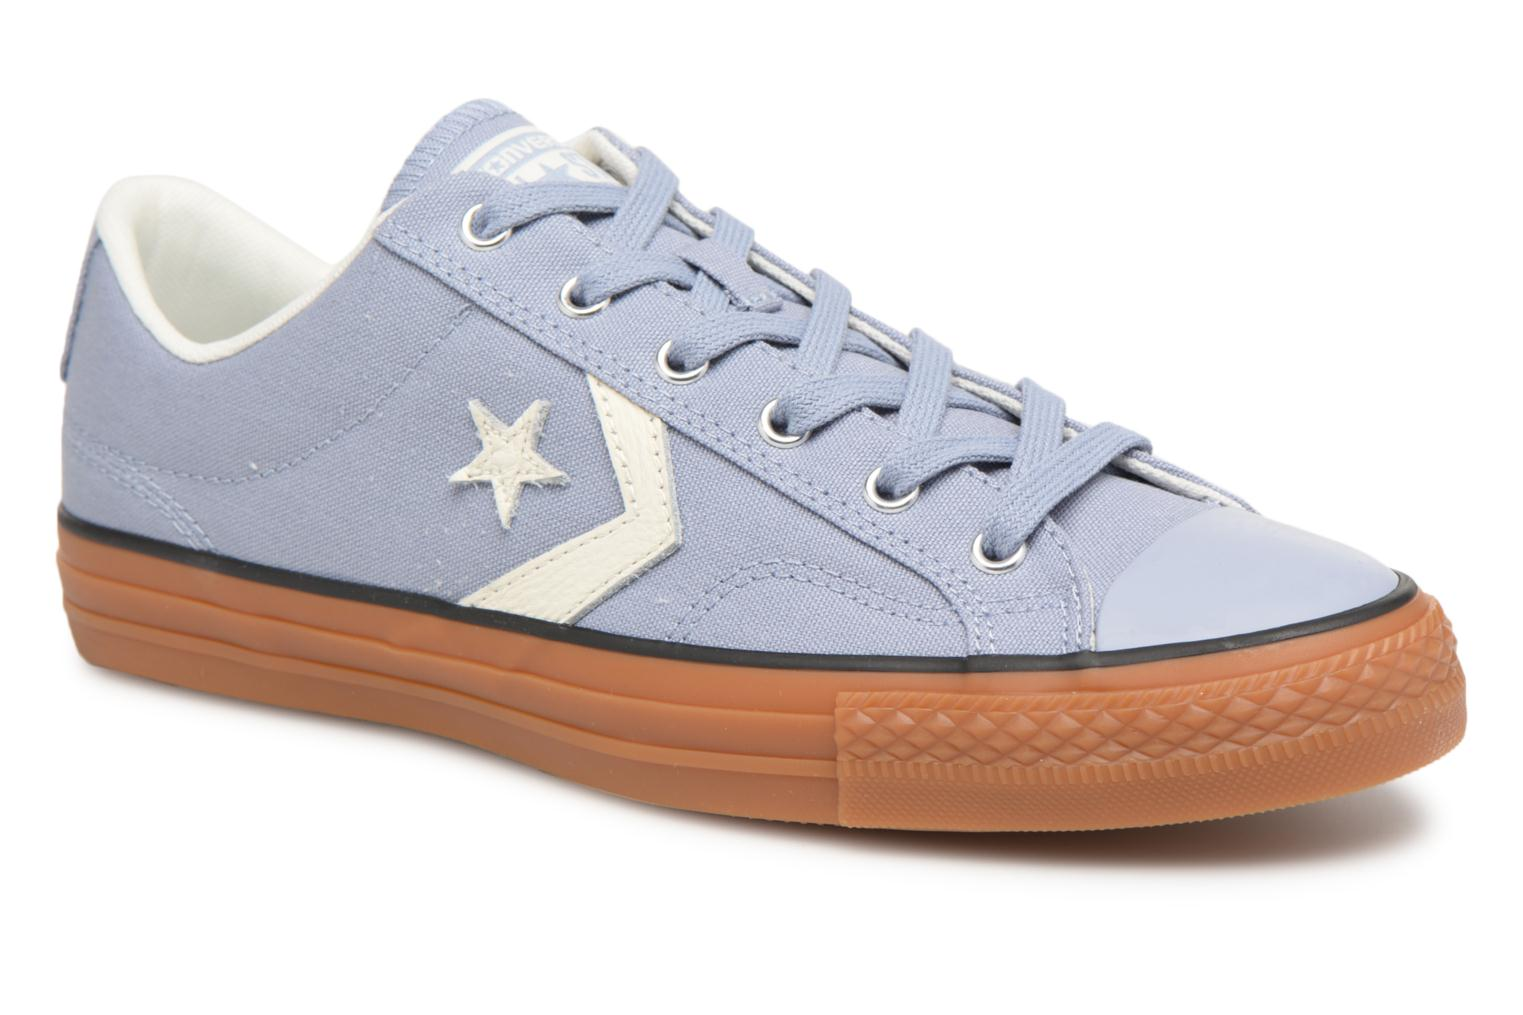 Marques Chaussure homme Converse homme Star Player Streetwear Ox Glacier Grey/Egret/Honey